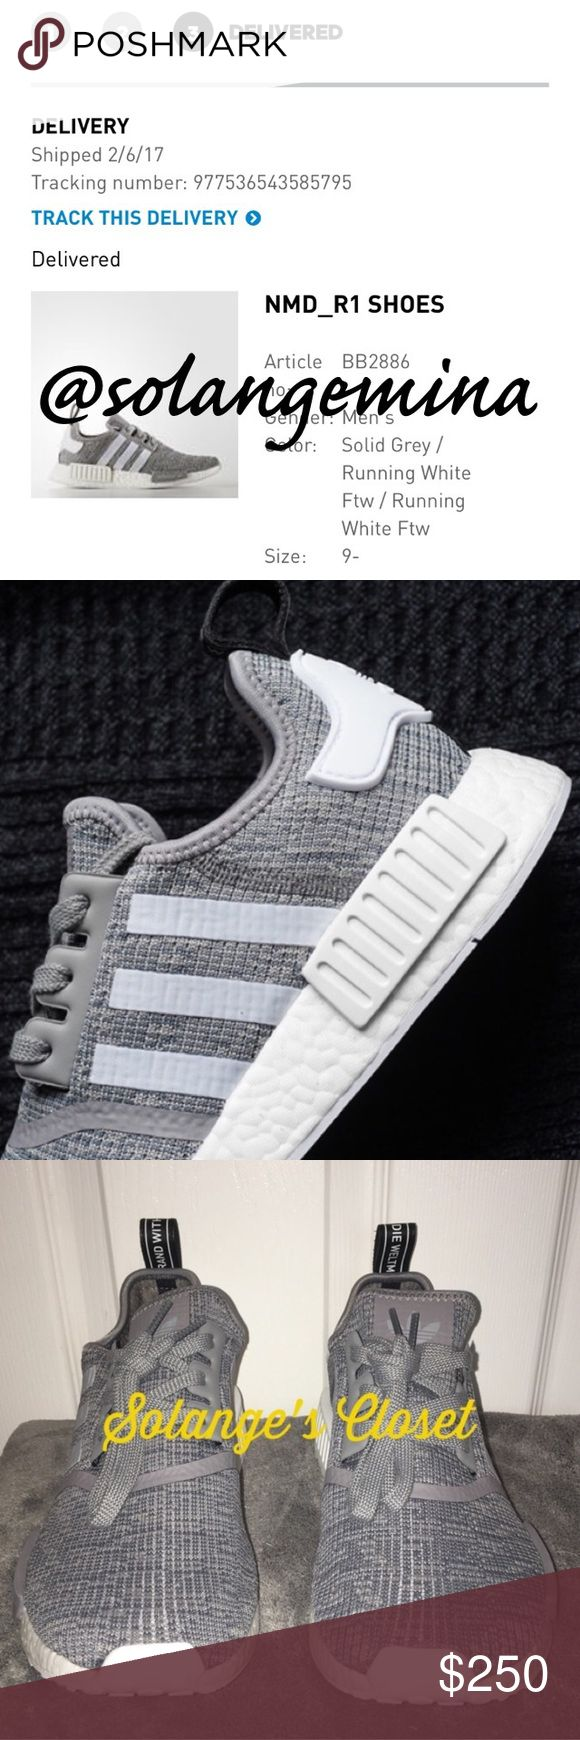 ADIDAS NMD R1 SNEAKERS -THIS IS A SIZE 9.5 MEN BUT WILL FIT SIZES 9.5-10.5(I have listed these sizes to make it easier to find your correct size!)🚨PLEASE KNOW YOUR NMD SIZE BEFORE ORDERING! NMD SIZING VARIES FROM YOUR REGULAR ADIDAS SIZING!🚨  -100% AUTHENTIC & COMES WITH BOX & RECEIPT FROM ADIDAS.COM!  -NO FLAWS! -Price is just about firm on this item due to rarity of colorway and size.   WILL LIST ON VINTED LOWER💕  🚫NO TRADES/HOLDS🚫 adidas Shoes Sneakers